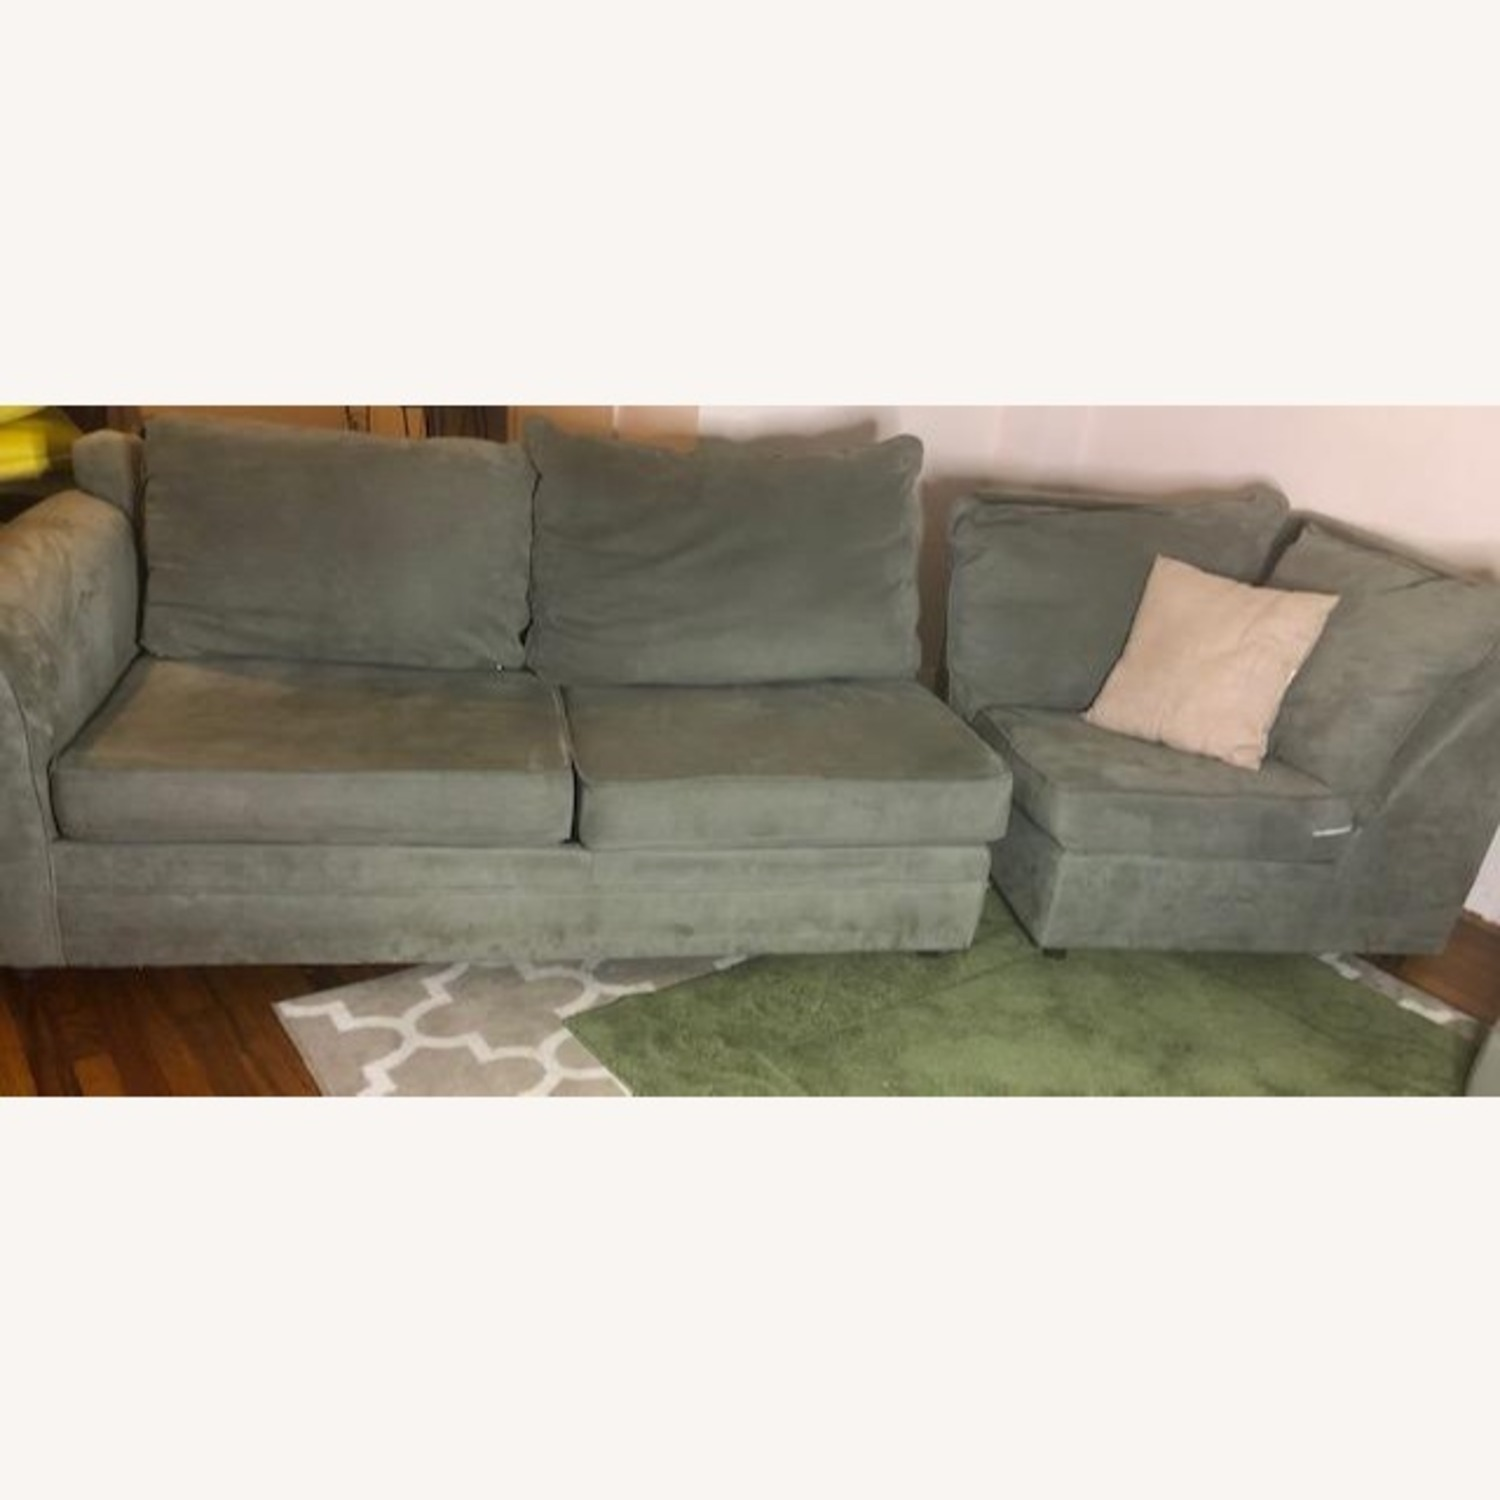 Bob's Discount Right Arm 2 Seater Sofa and Corner Chair - image-2